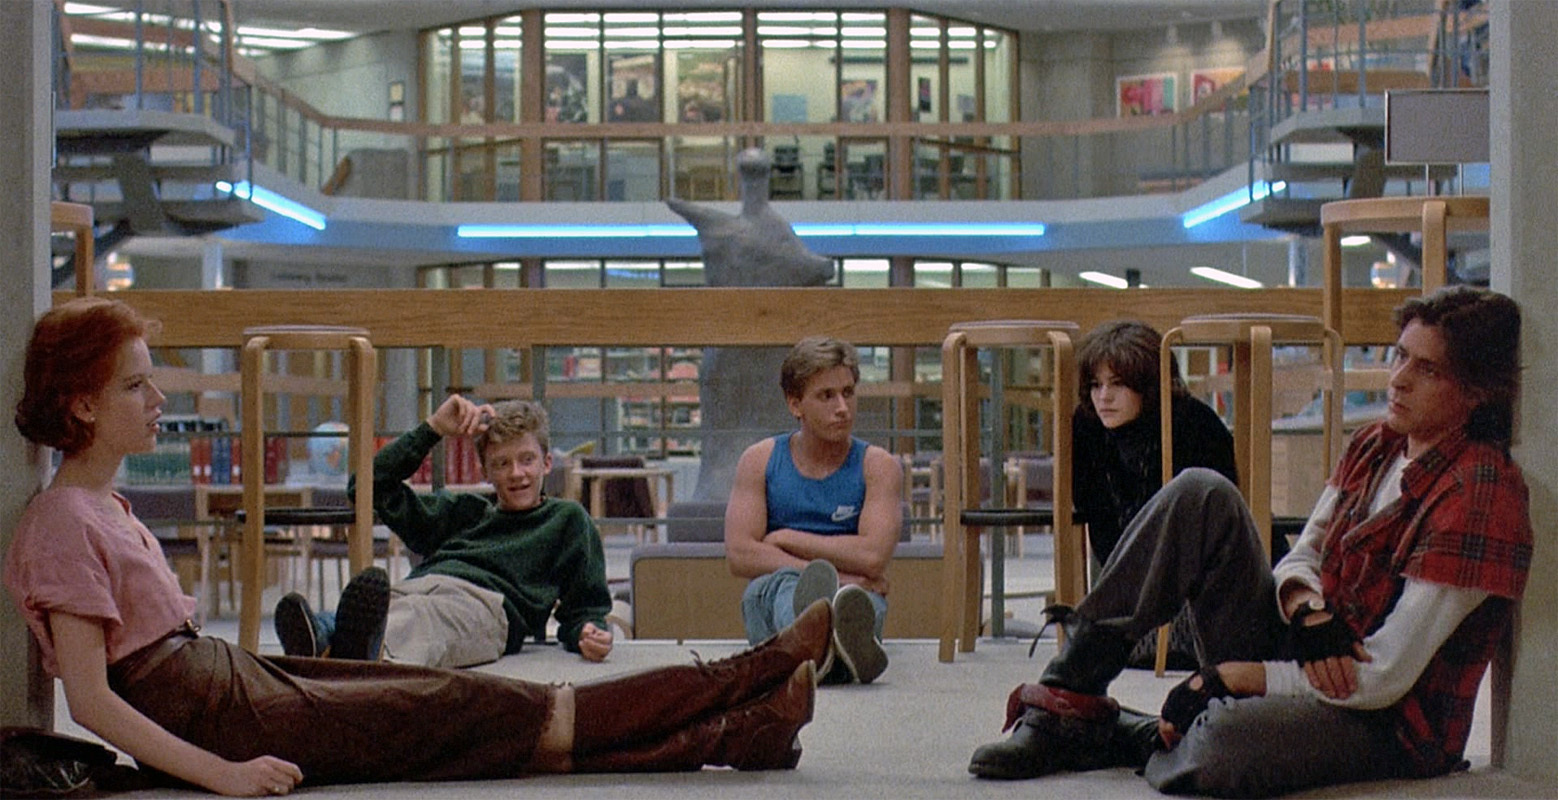 bc - The Breakfast Club - Generation Defining 30 Years Later